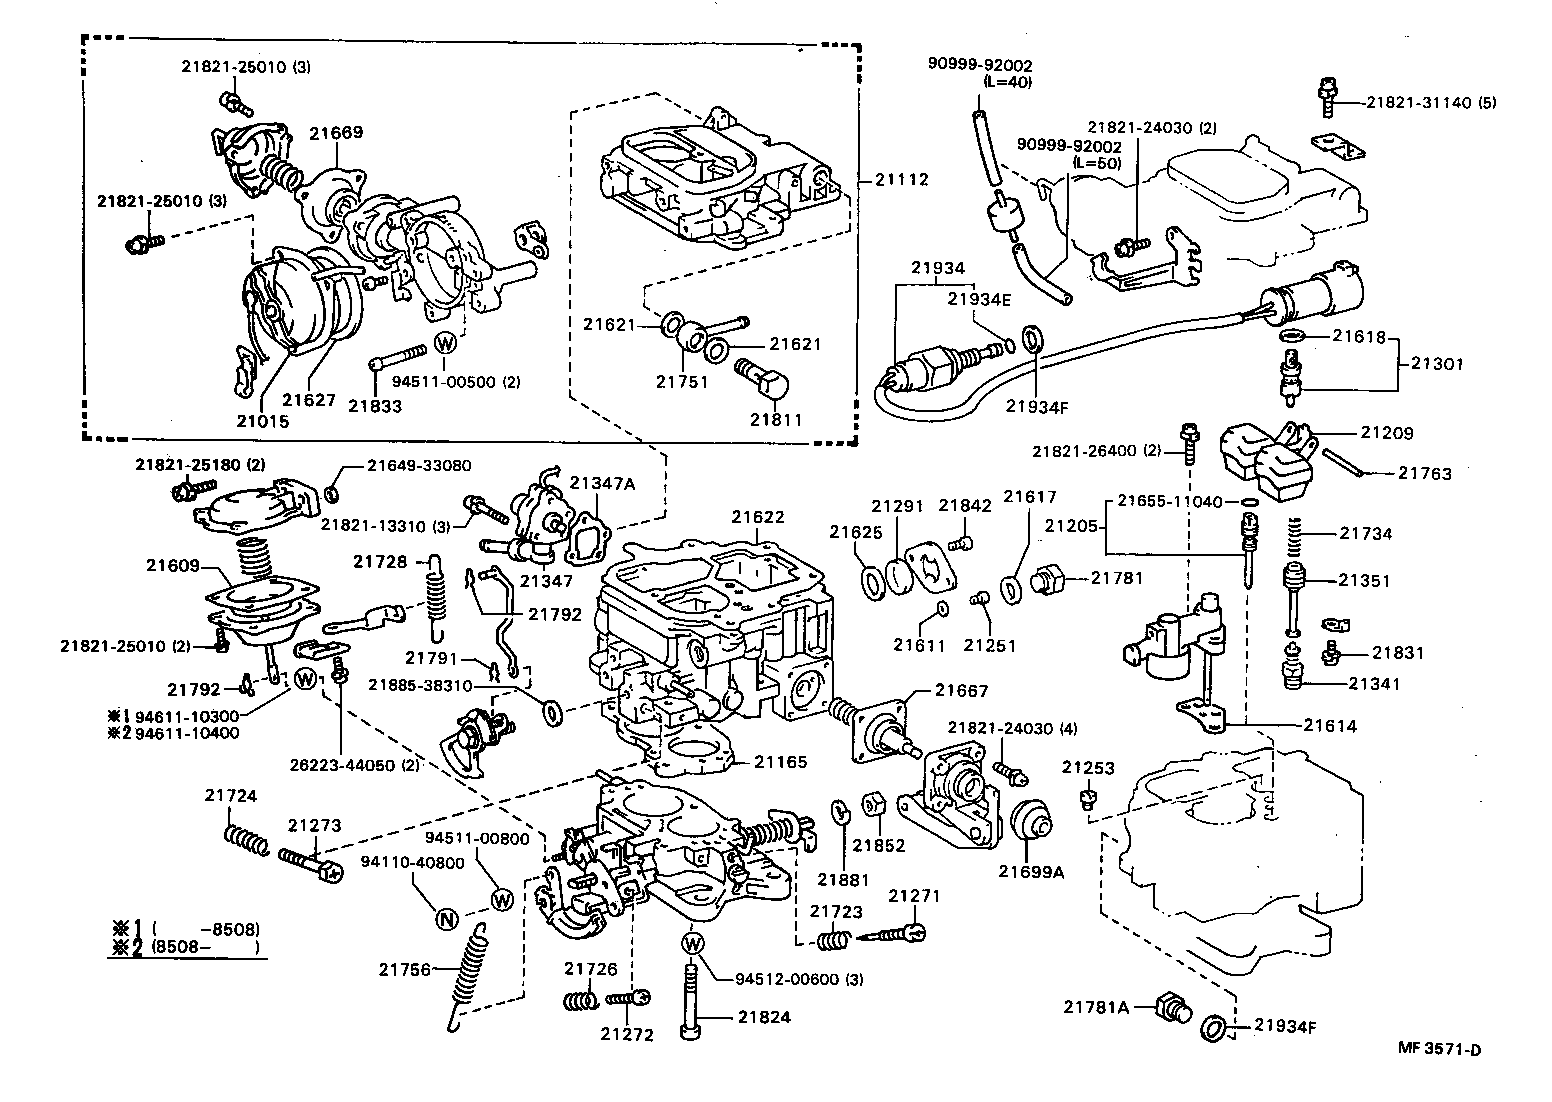 1985 Toyota Pickup Engine Diagram Wiring Diagrams 3 5 22r Car Tuning Get Free Image 85